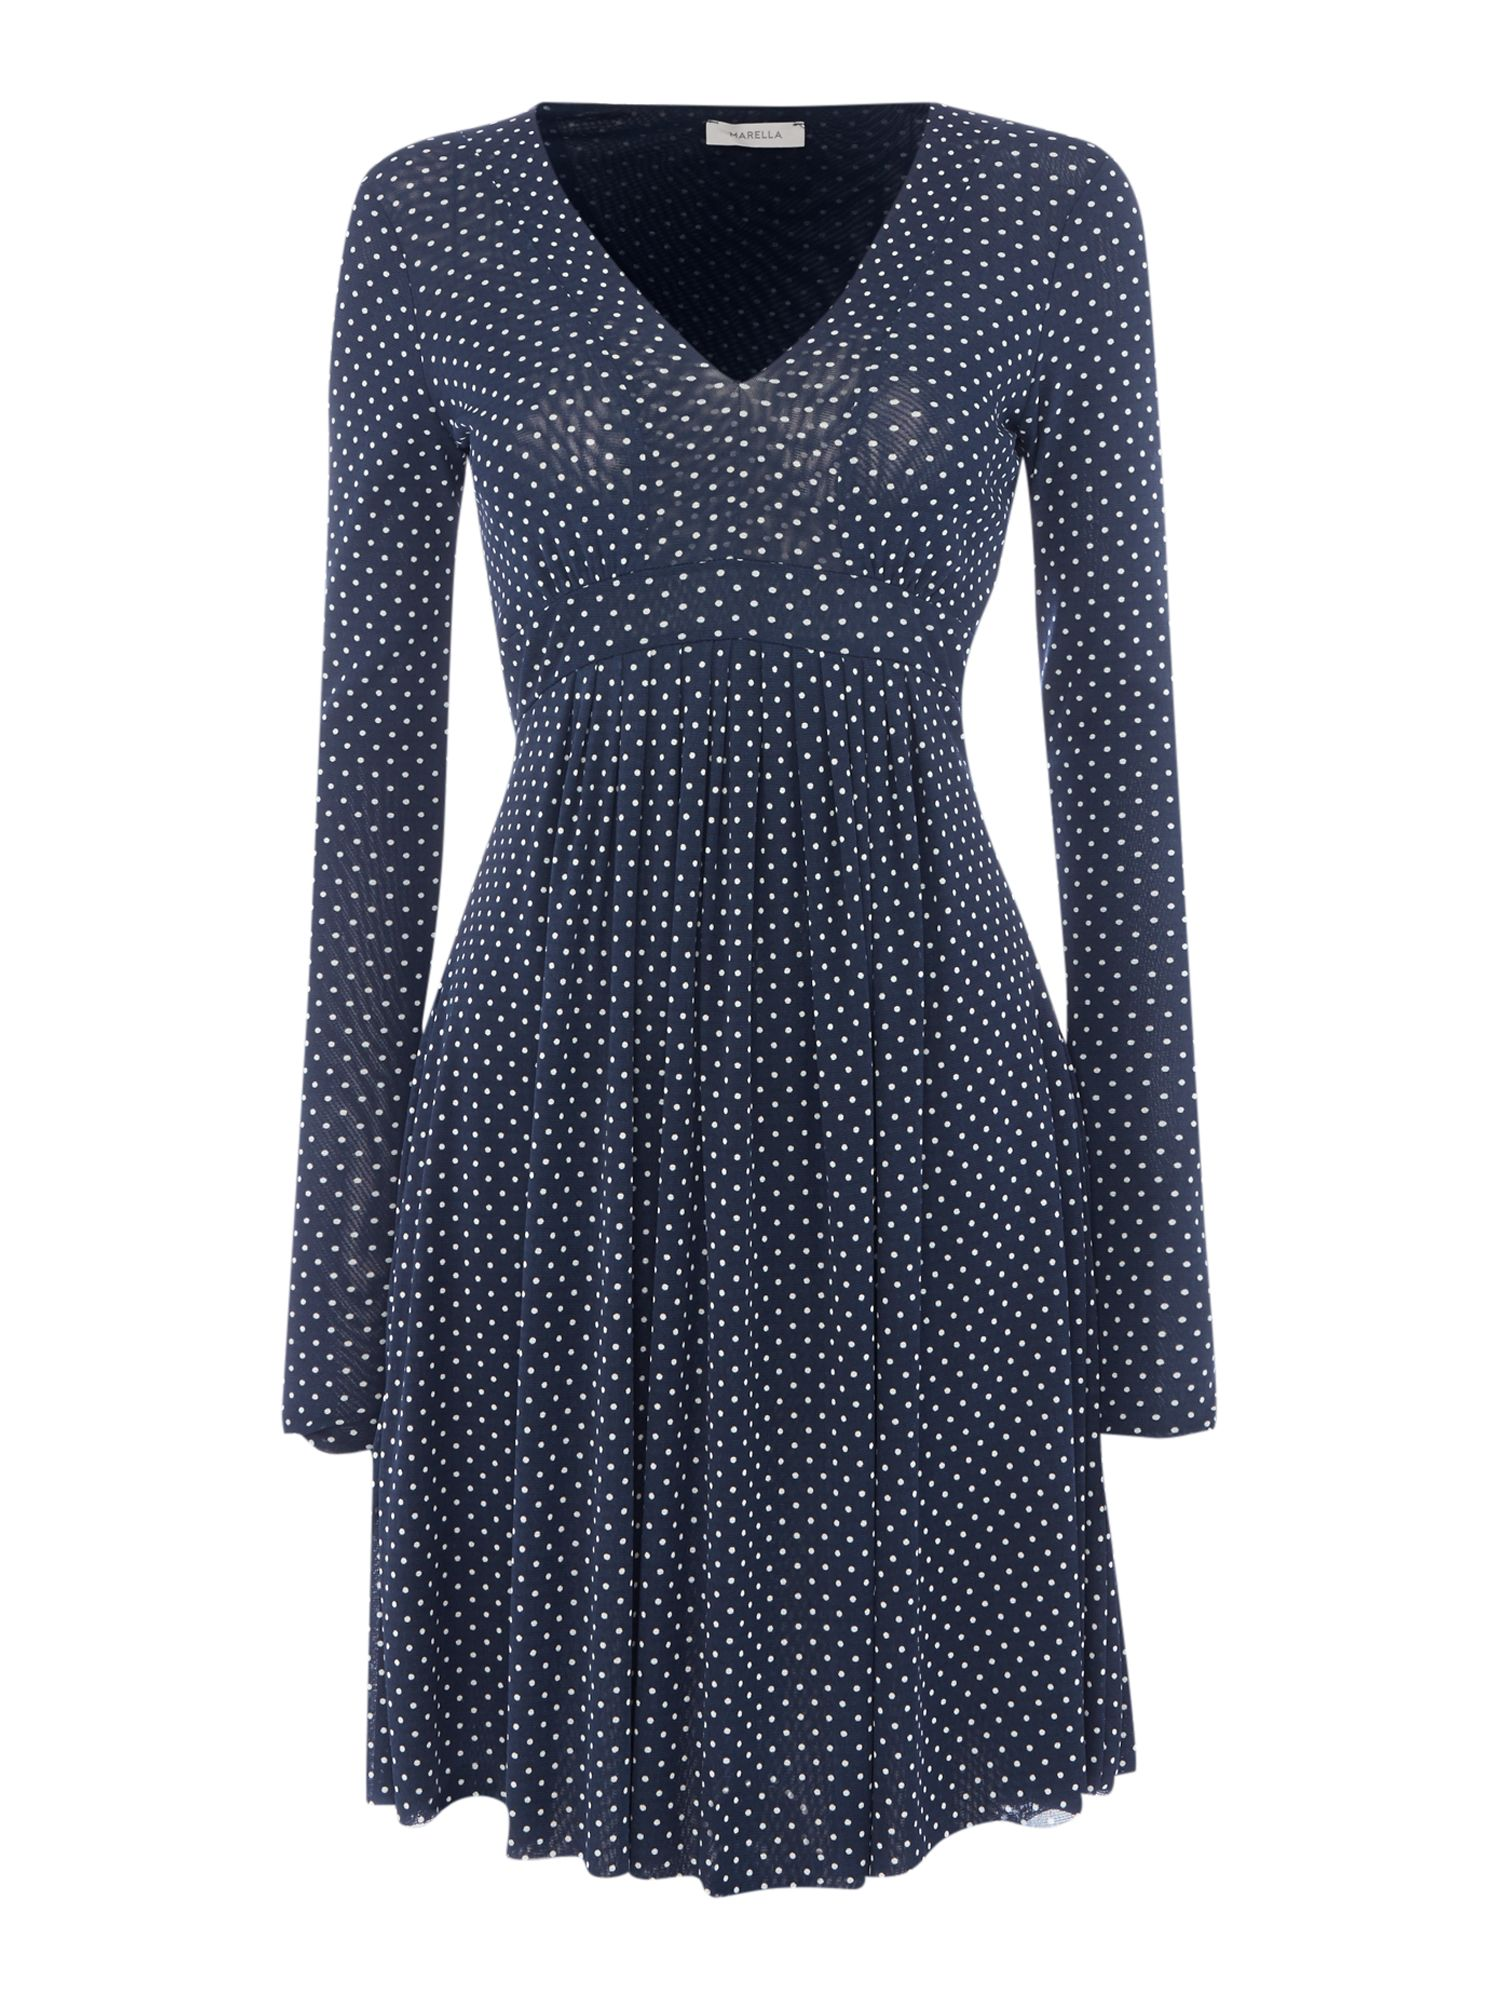 Marella PANFILO longsleeve mini dot dress, Blue